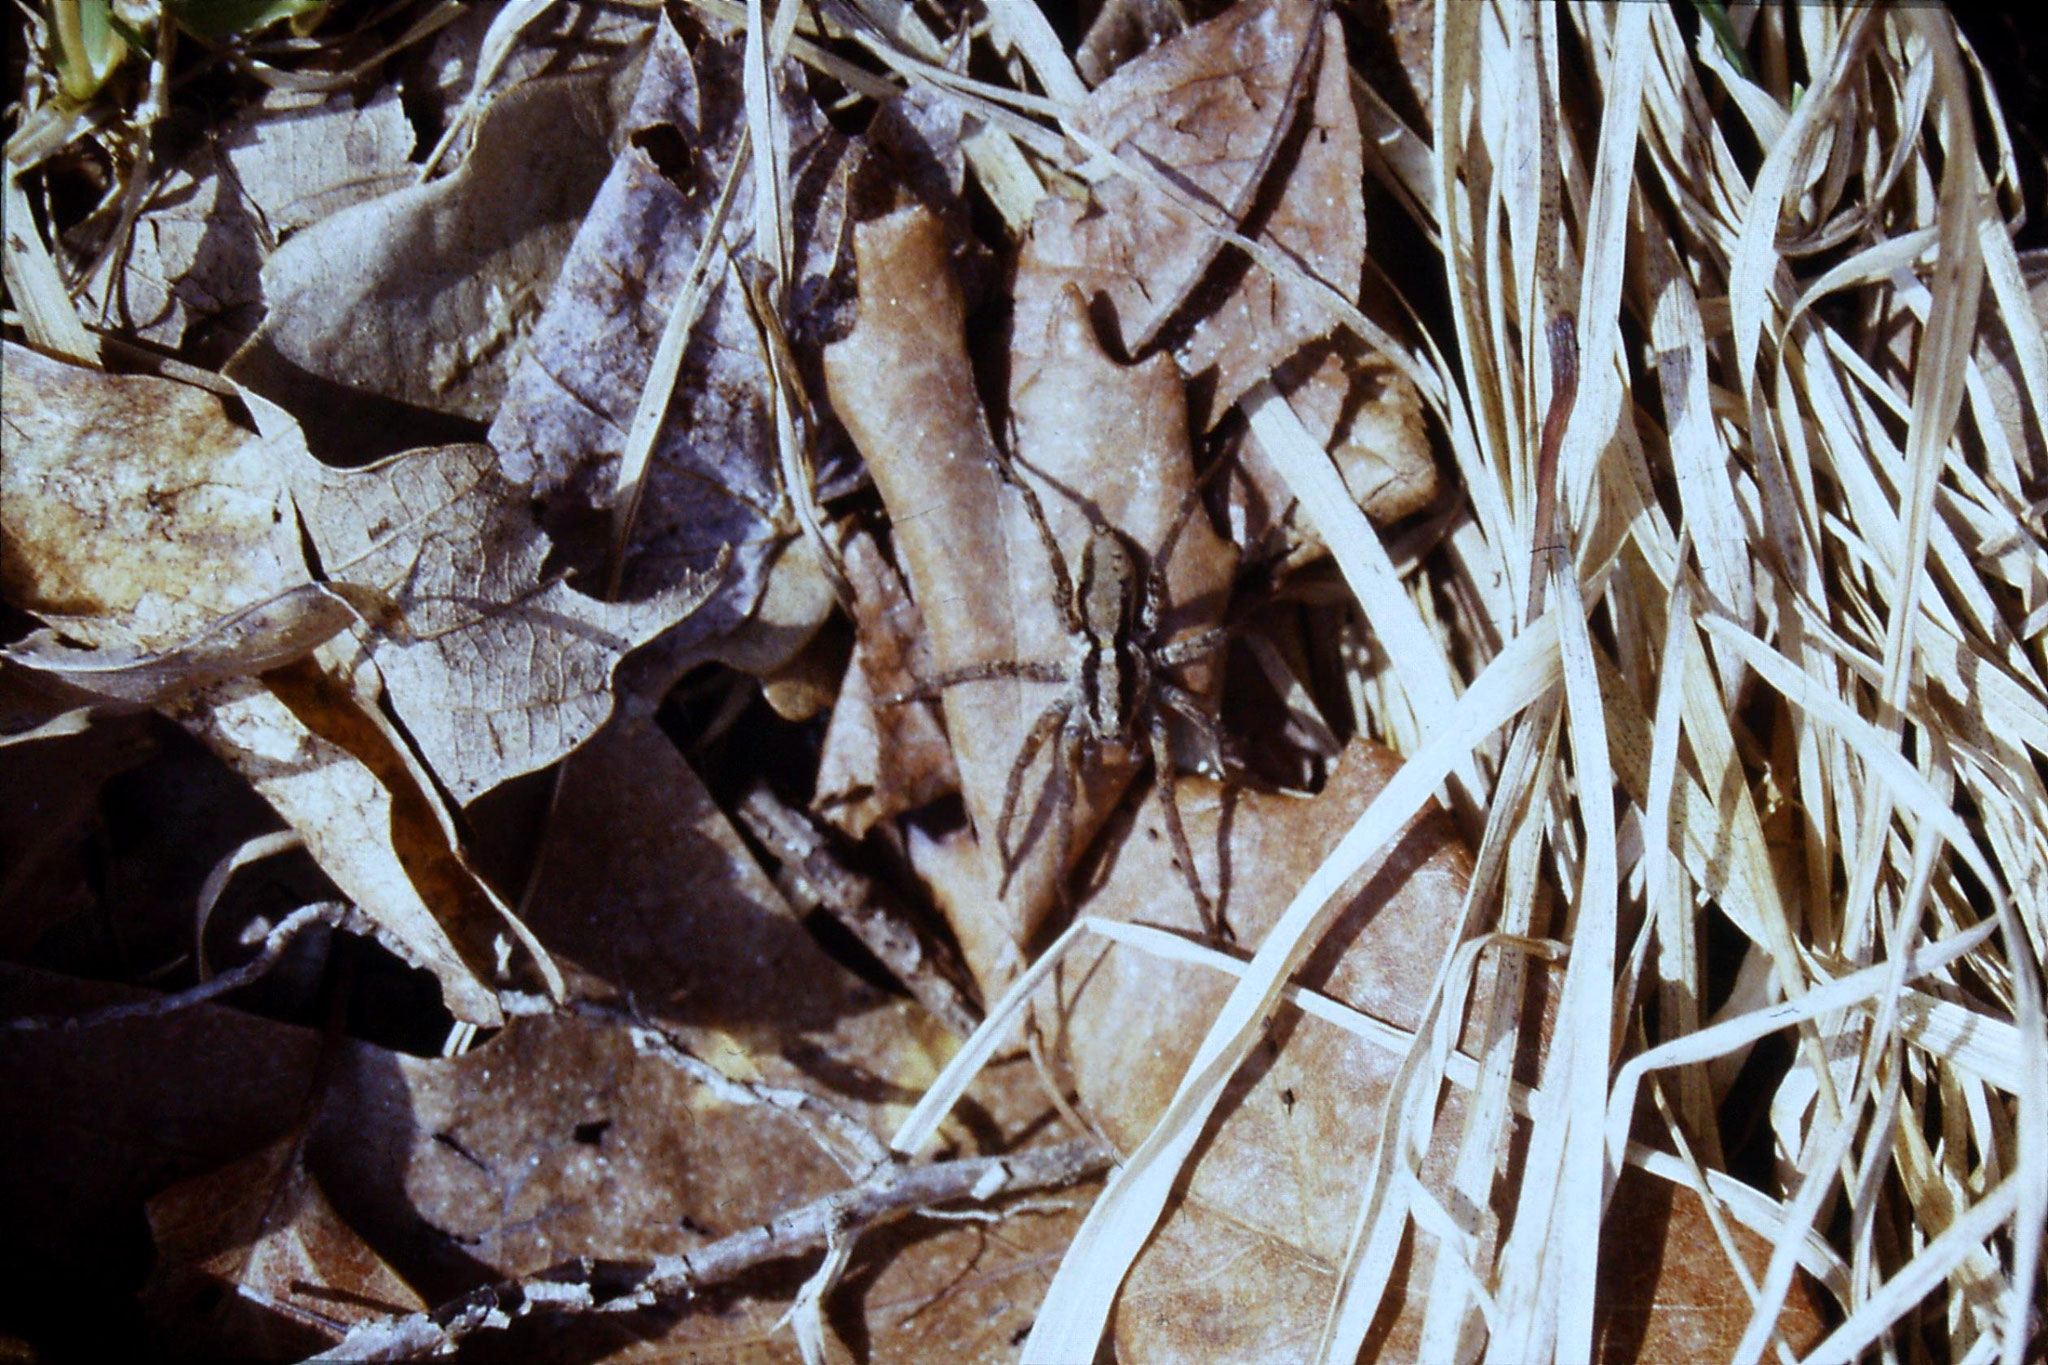 20/3/1991: 1: Seneca Rocks, spider